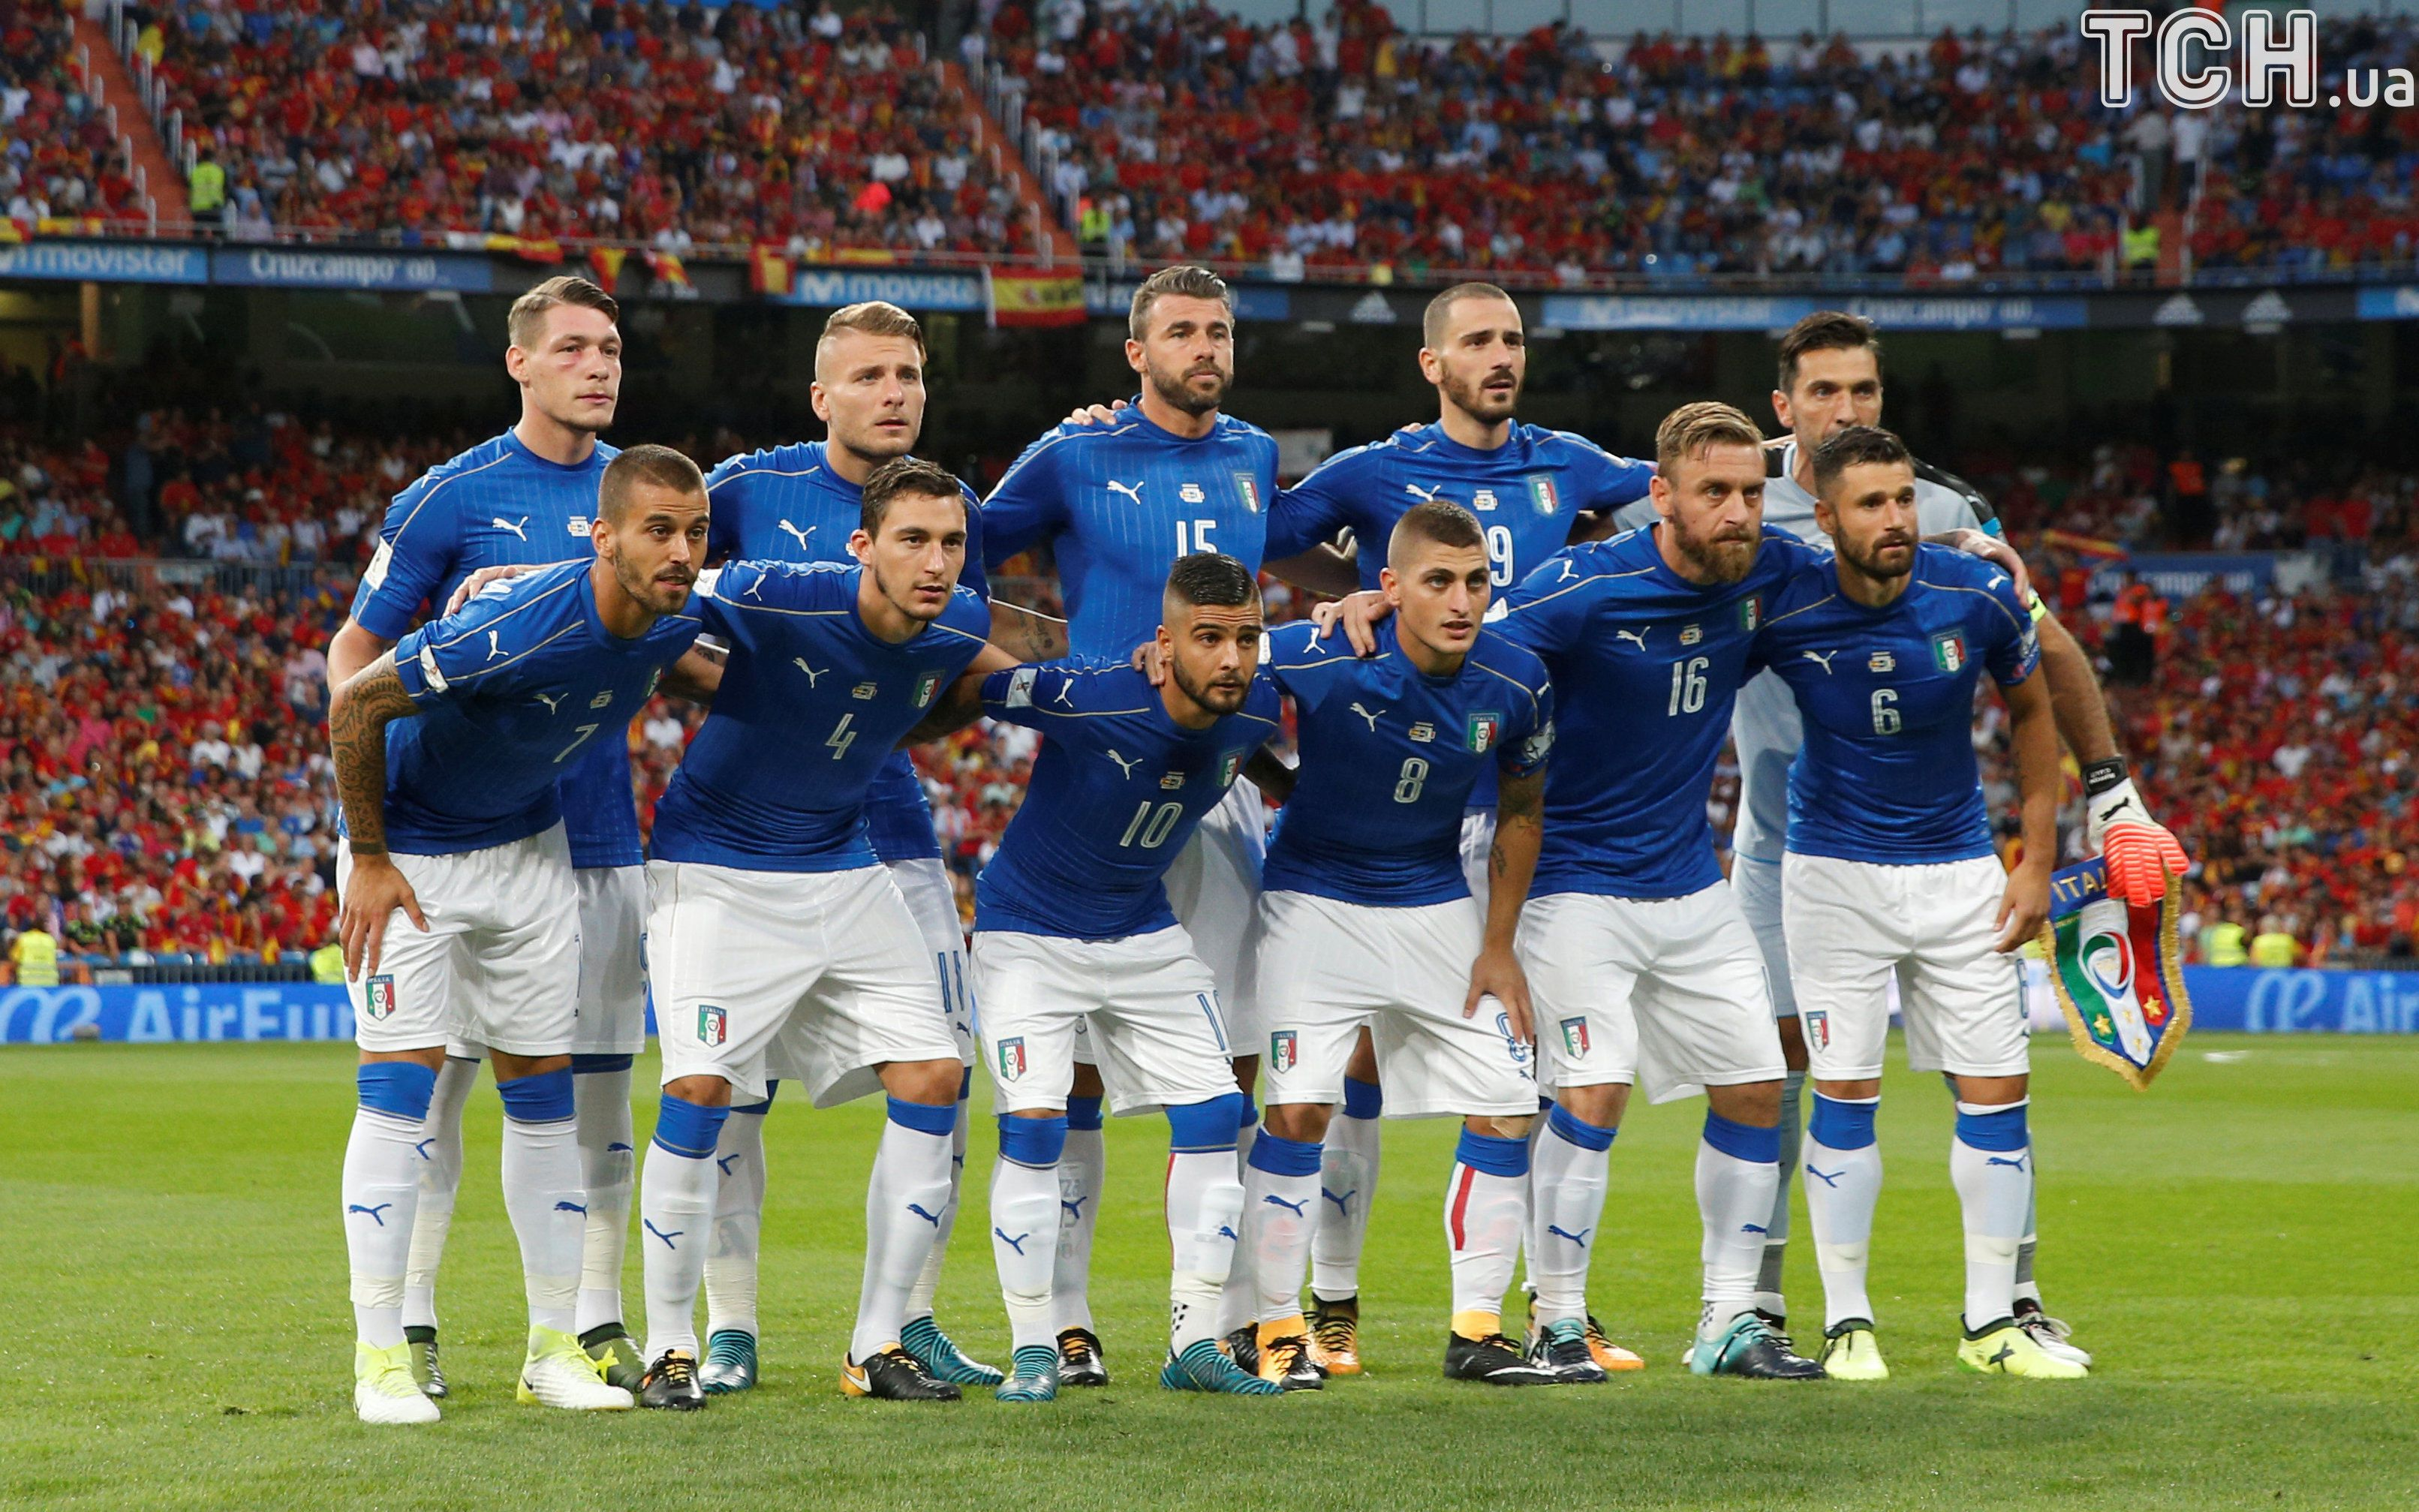 Italian soccer team pictures Saudi soccer team refuse to stand for London victims